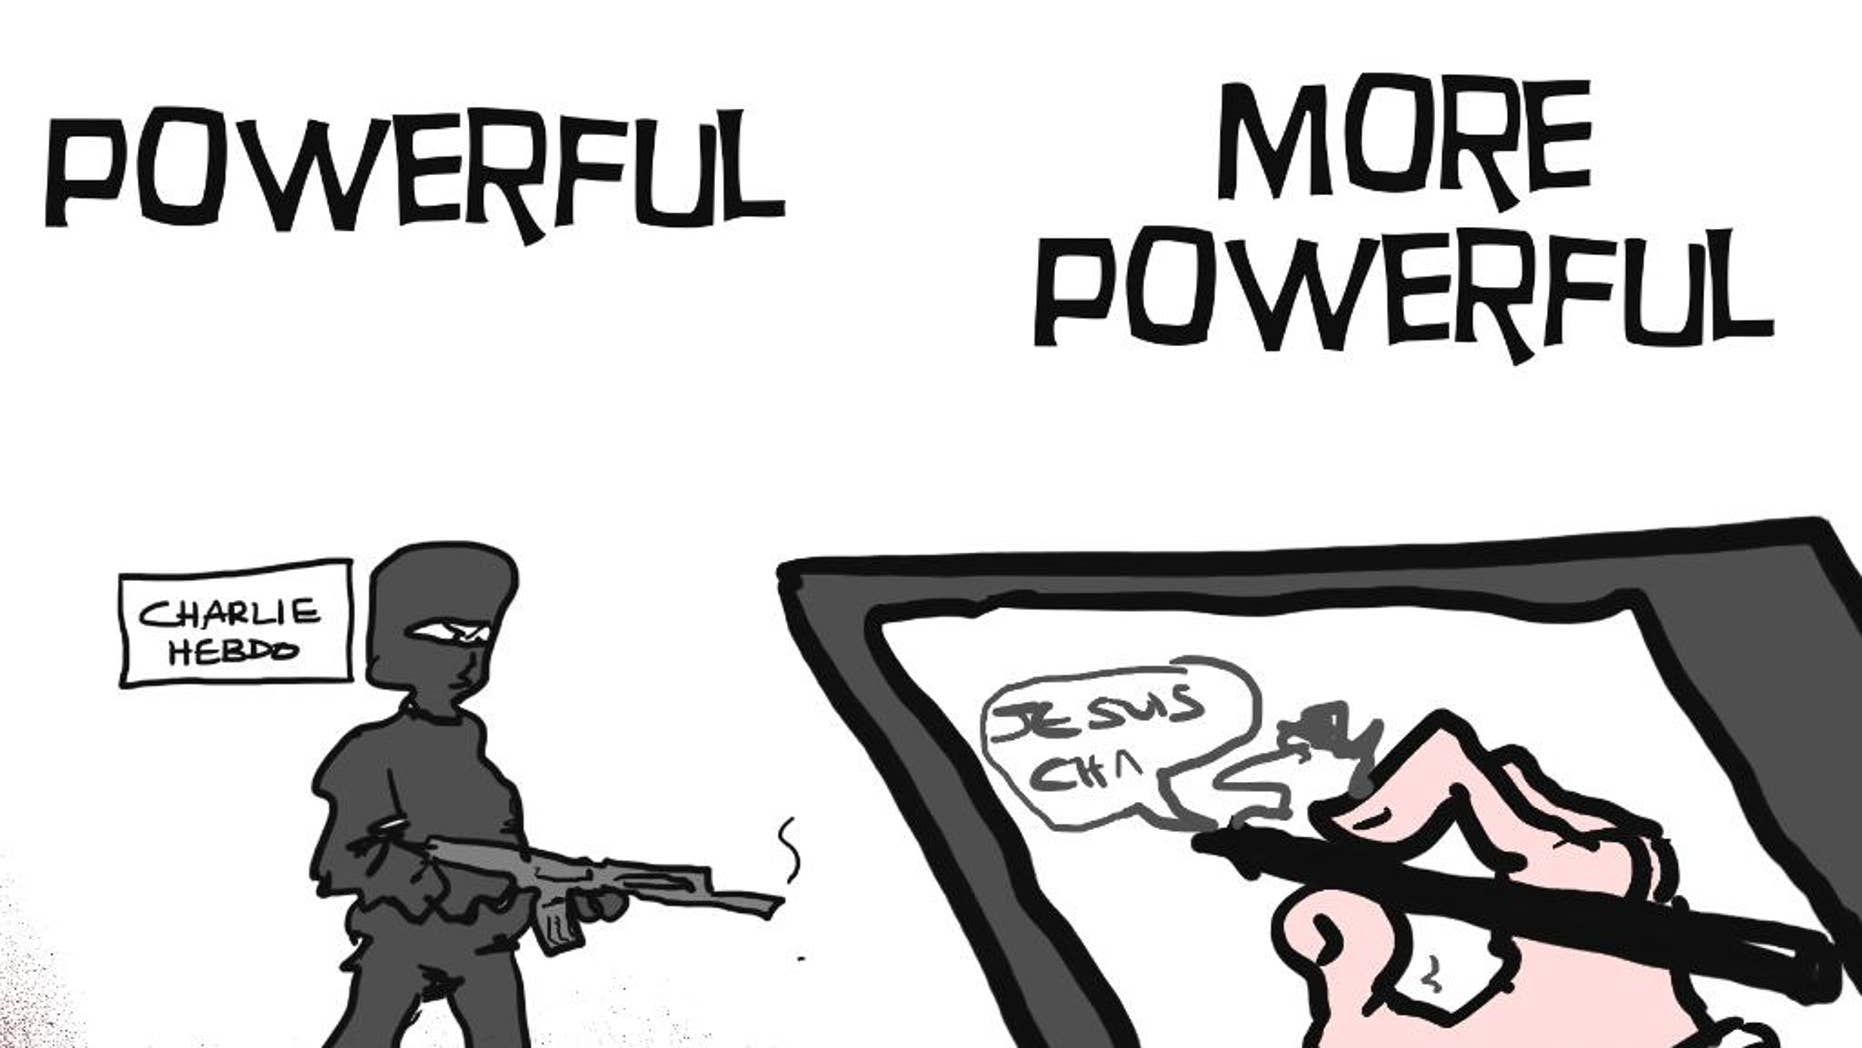 A cartoon tribute drawn by MacLeod was released in solidarity with those killed in an attack at the Paris offices of the weekly newspaper Charlie Hebdo after masked gunmen stormed their offices on Wednesday, Jan. 7, 2015. As if to prove that pens are mightier than swords, cartoonists around the world reacted to the cold-bloodied assassination of their colleagues at French satirical magazine Charlie Hebdo as only they can: with powerful drawings worth a thousand words. Defiant, angry, poignant, irreverent and sobering, their drawings united cartoonists in grief, tried to make sense of the nonsensical, and sent a shared message: We must not, will not and should not be silenced. Some drawings made one want to both laugh and cry. (AP Photo/MacLeod Cartoons)